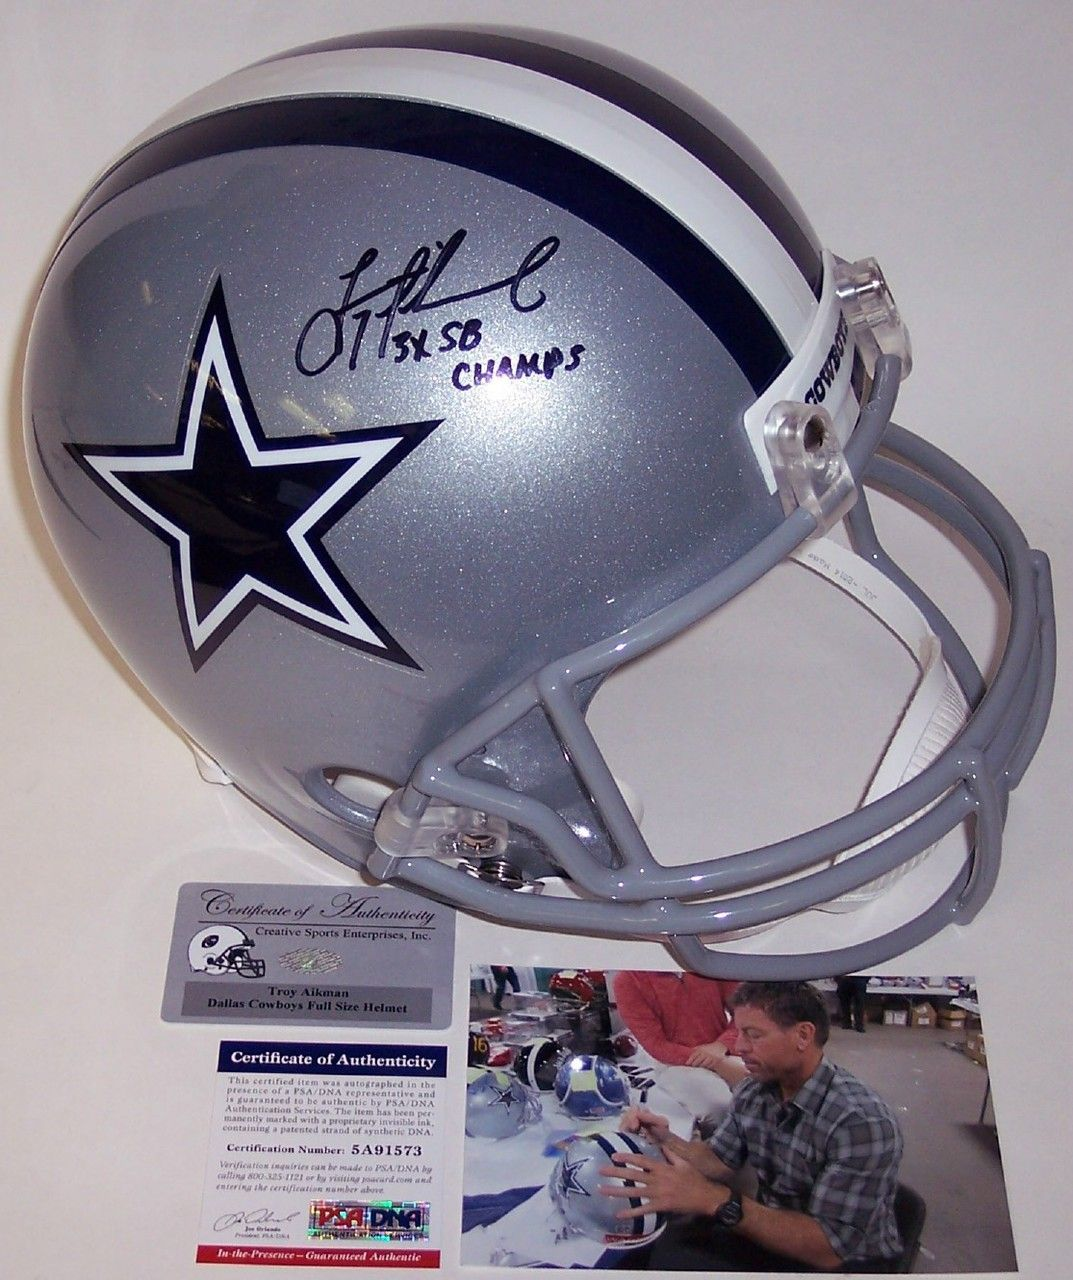 64b0a3c86 Troy Aikman Autographed Hand Signed Dallas Cowboys Full Size Helmet -  PSA DNA